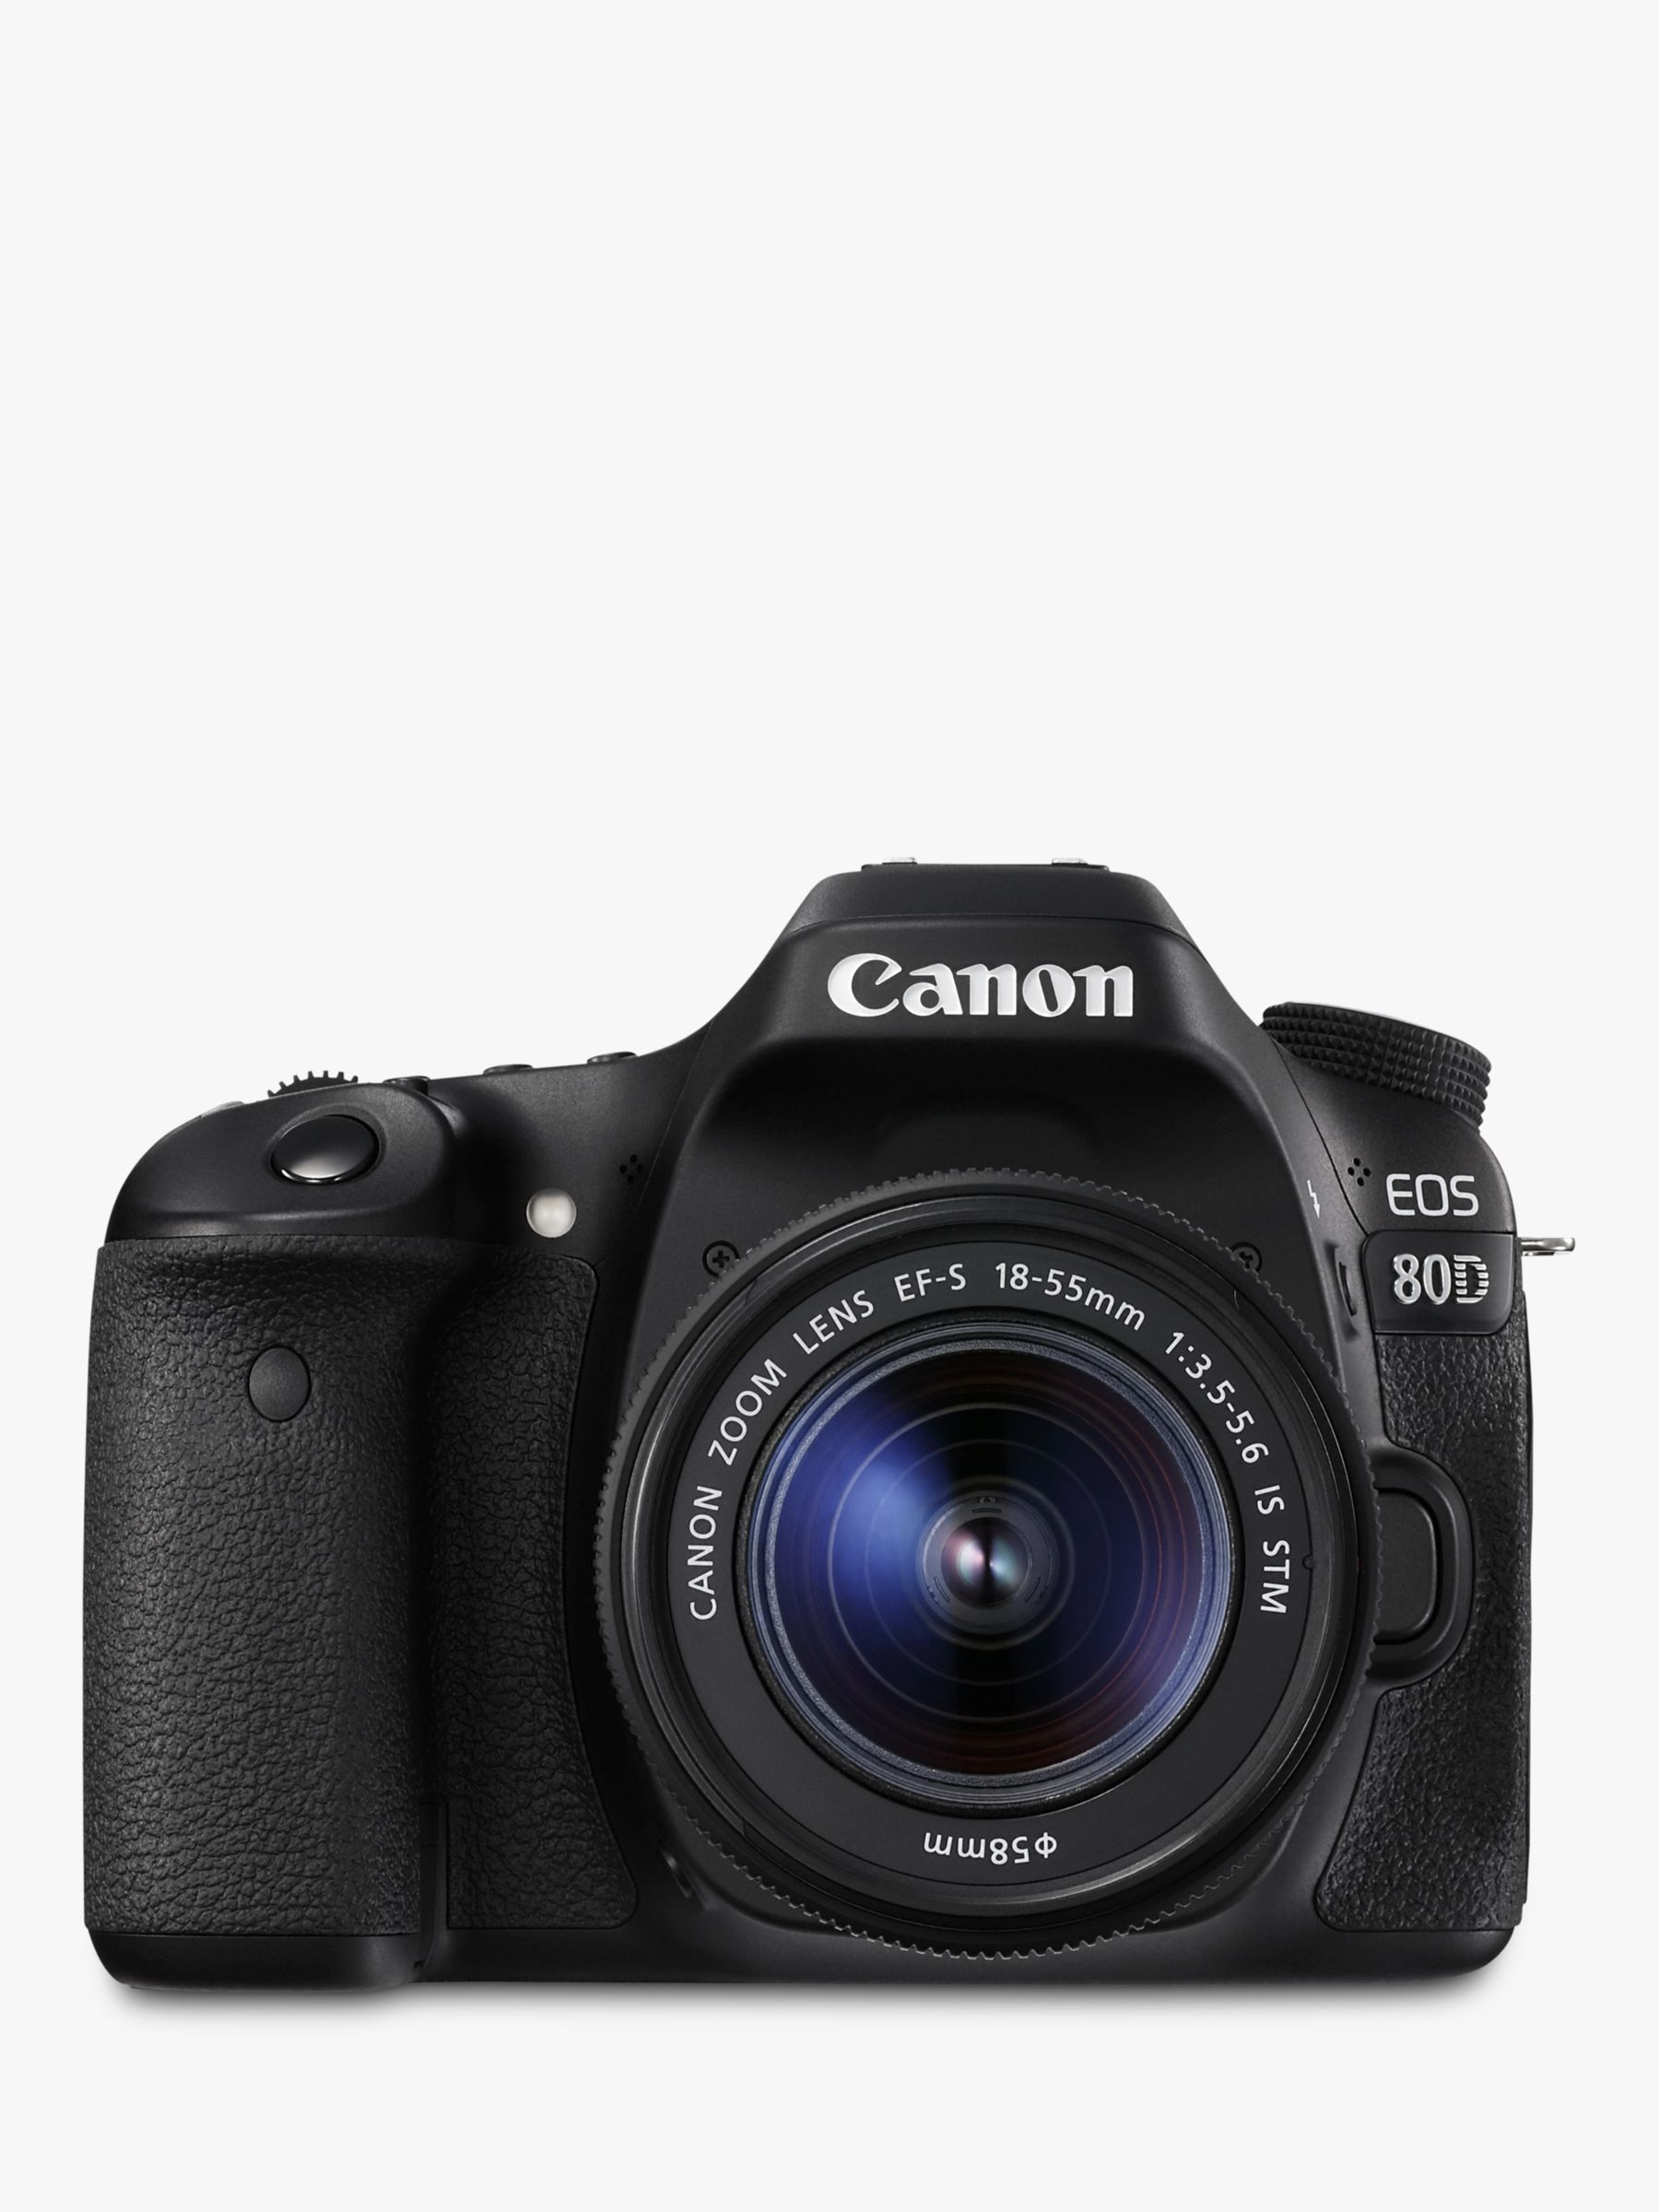 Canon EOS 80D Digital SLR Camera With 18-55mm Lens, HD 1080p, 24 2MP,  Wi-Fi, NFC, 3